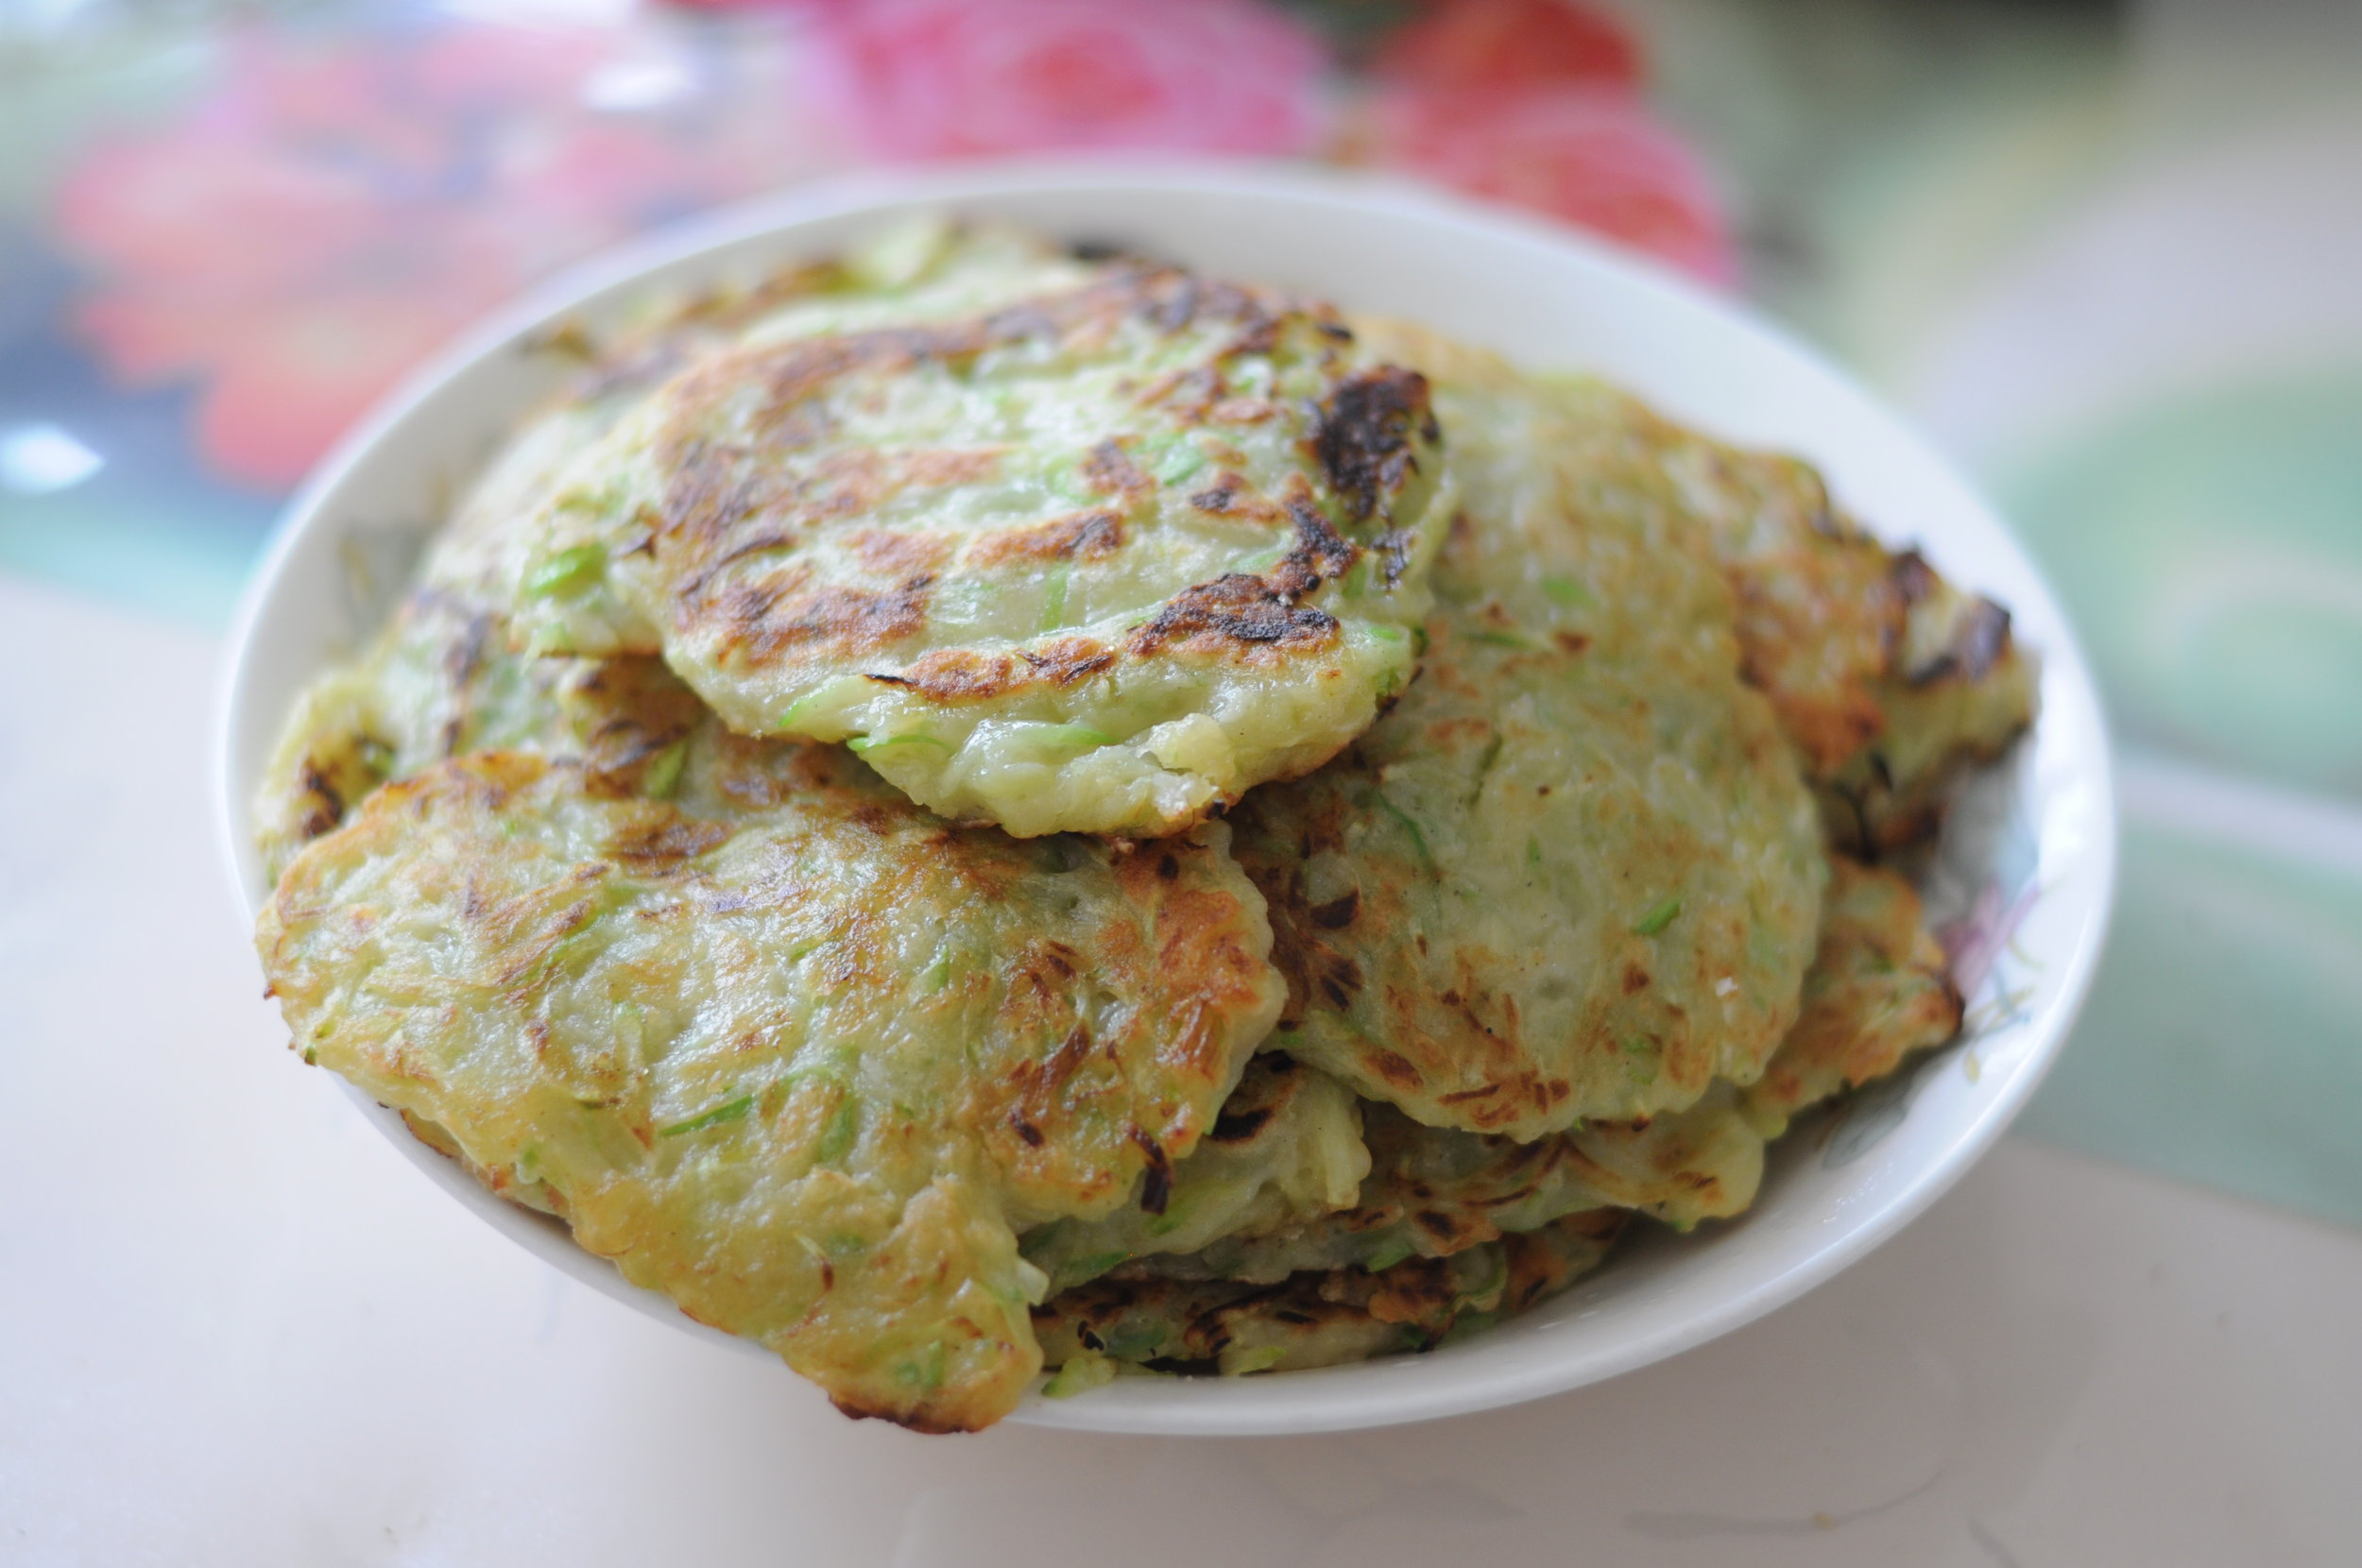 Pancakes made of grated squash, flour, and eggs.